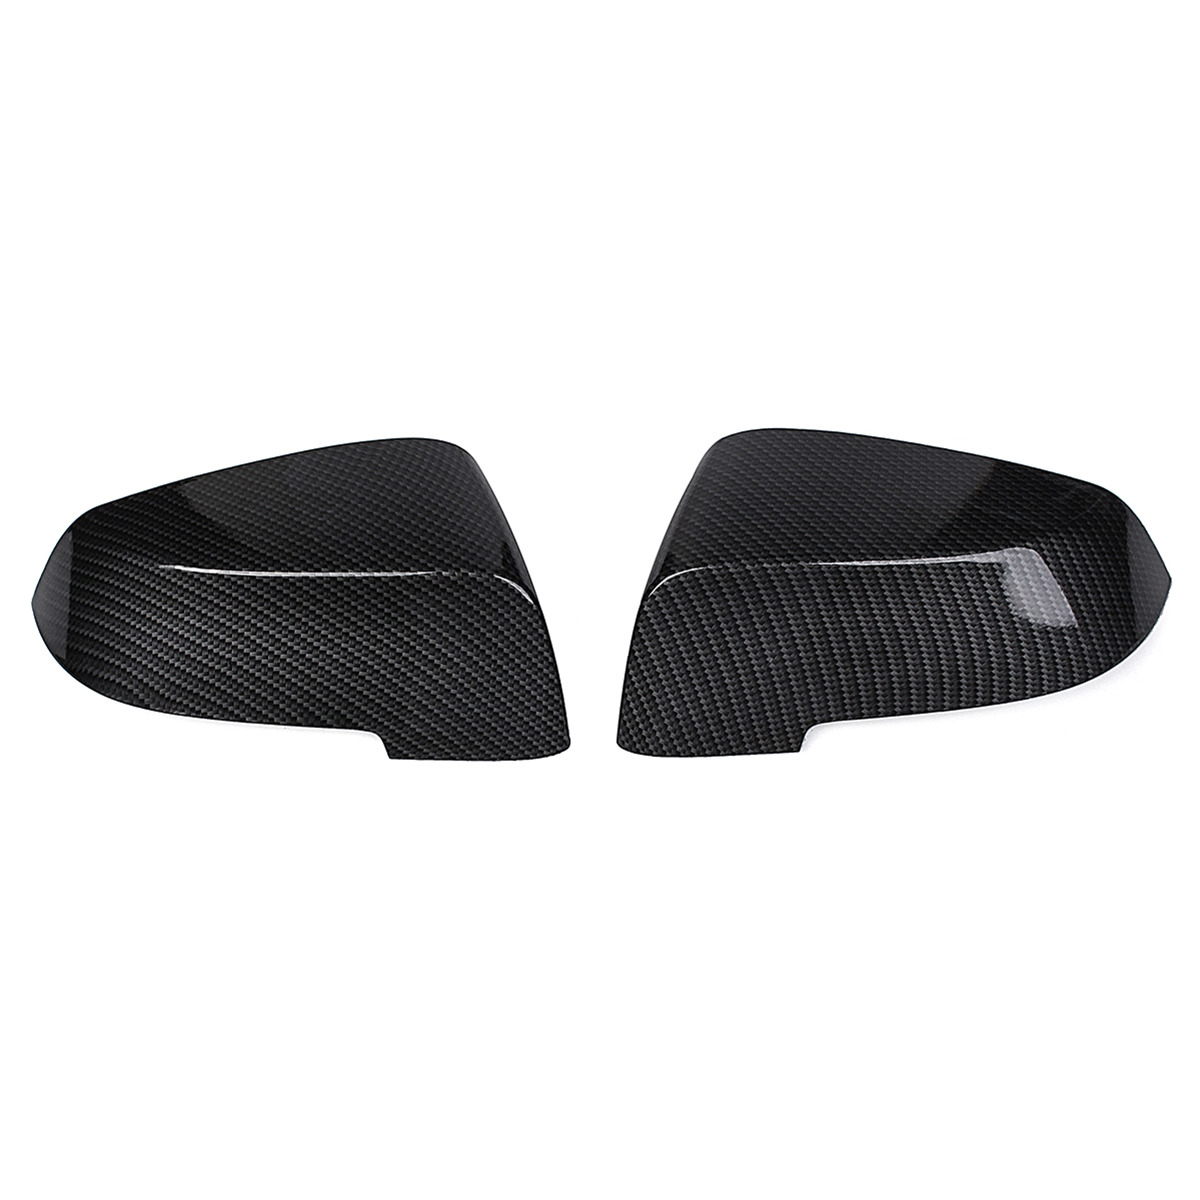 Hot Sale 1 Pair Carbon Fiber Side Wing Replacement Rearview Mirror Cover Cap for <font><b>BMW</b></font> F10 <font><b>F11</b></font> 2014 <font><b>2015</b></font> 2016 2017 image